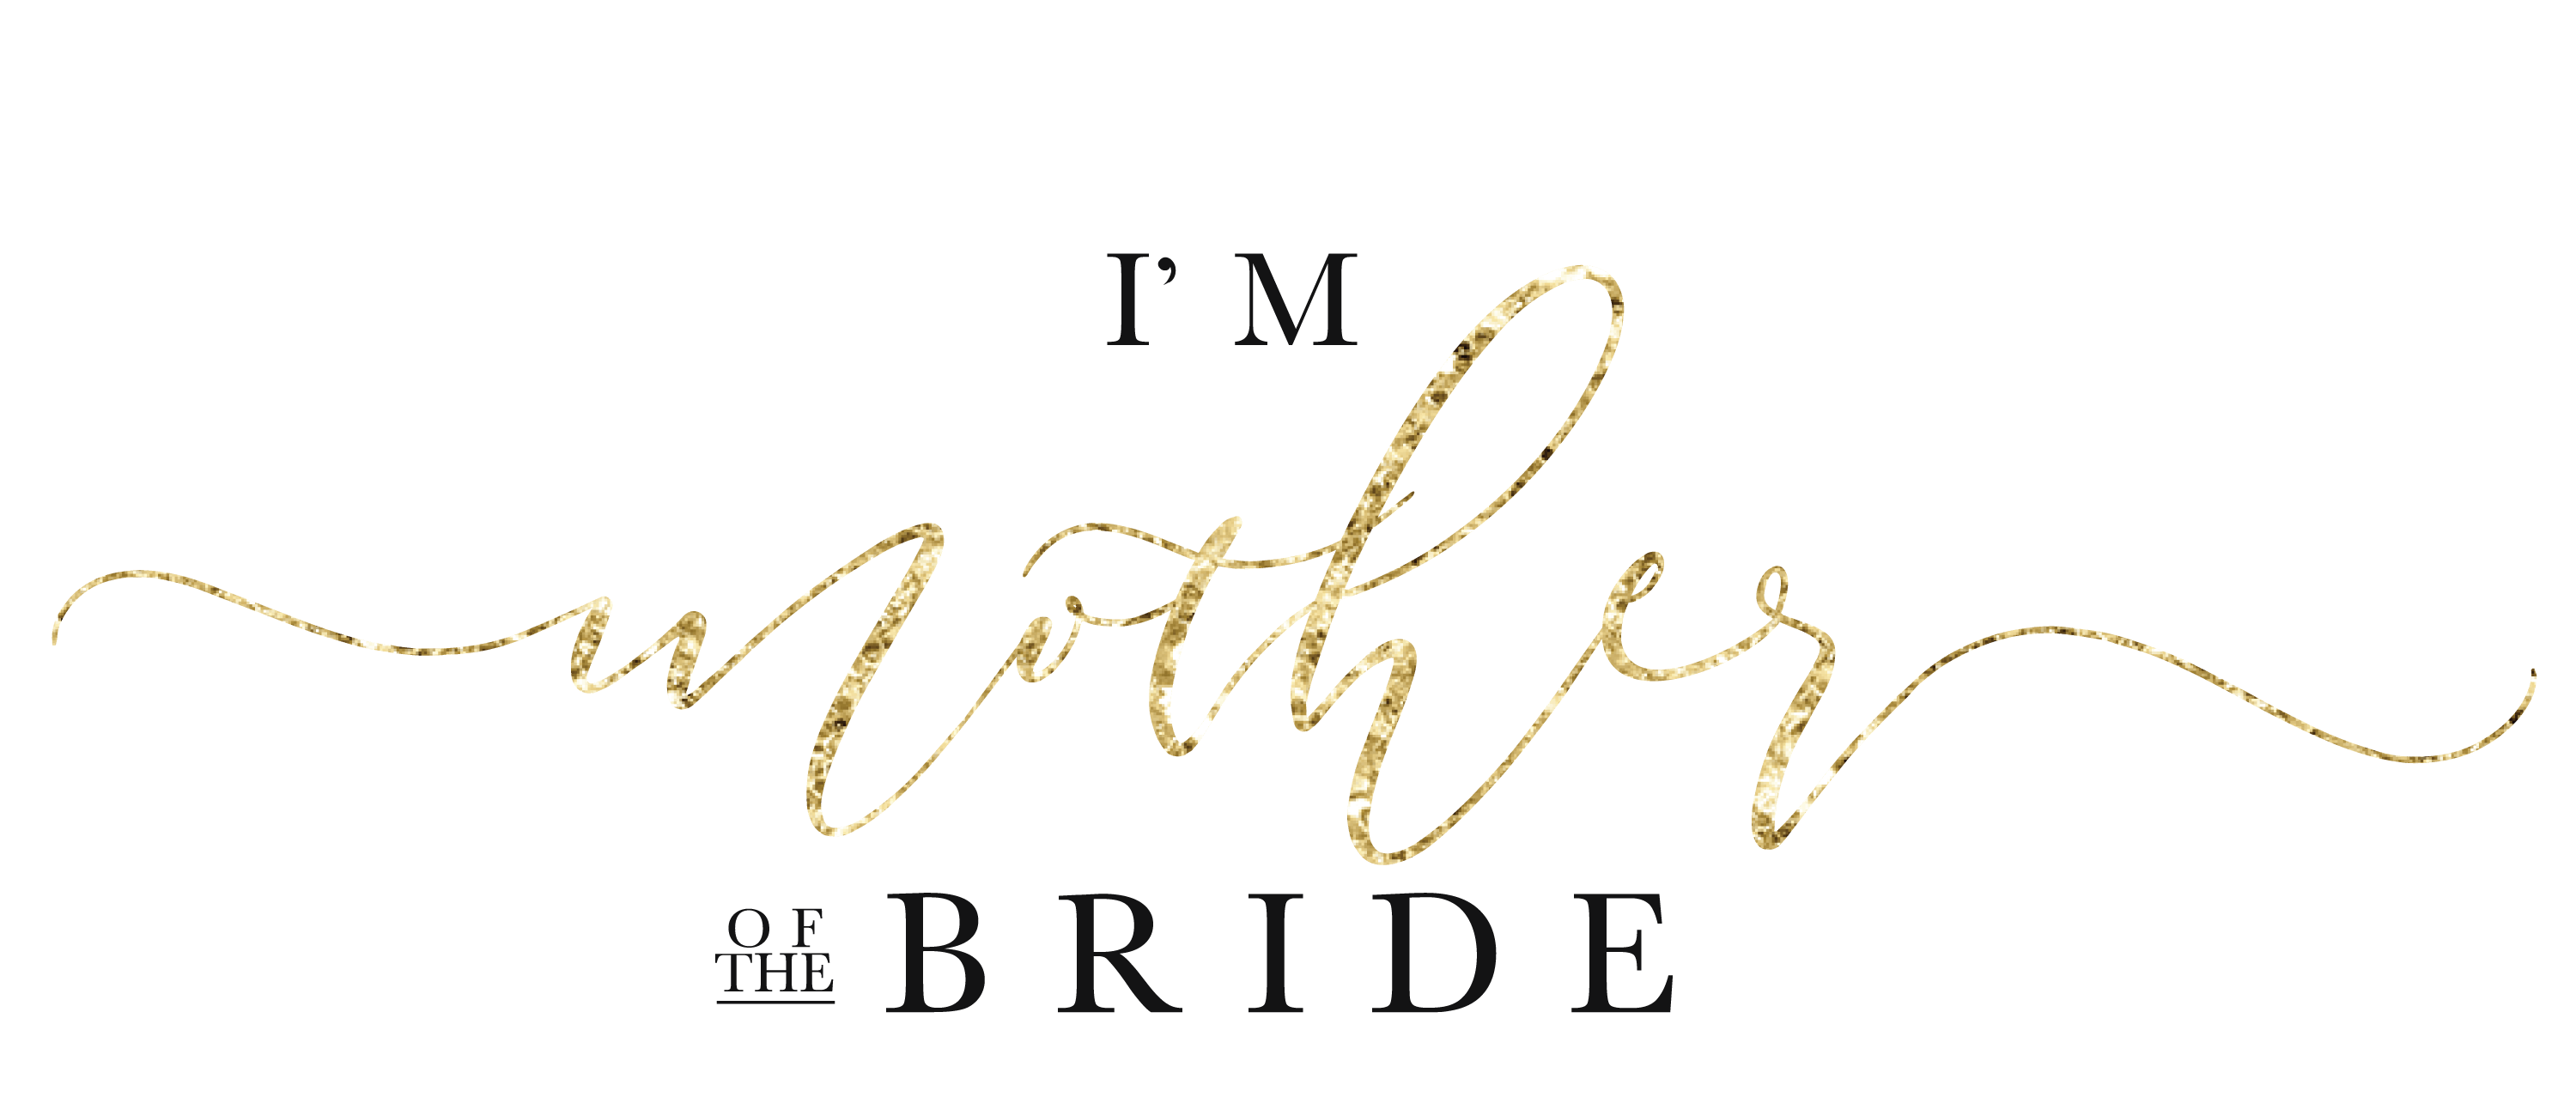 I'm Mother of the Bride